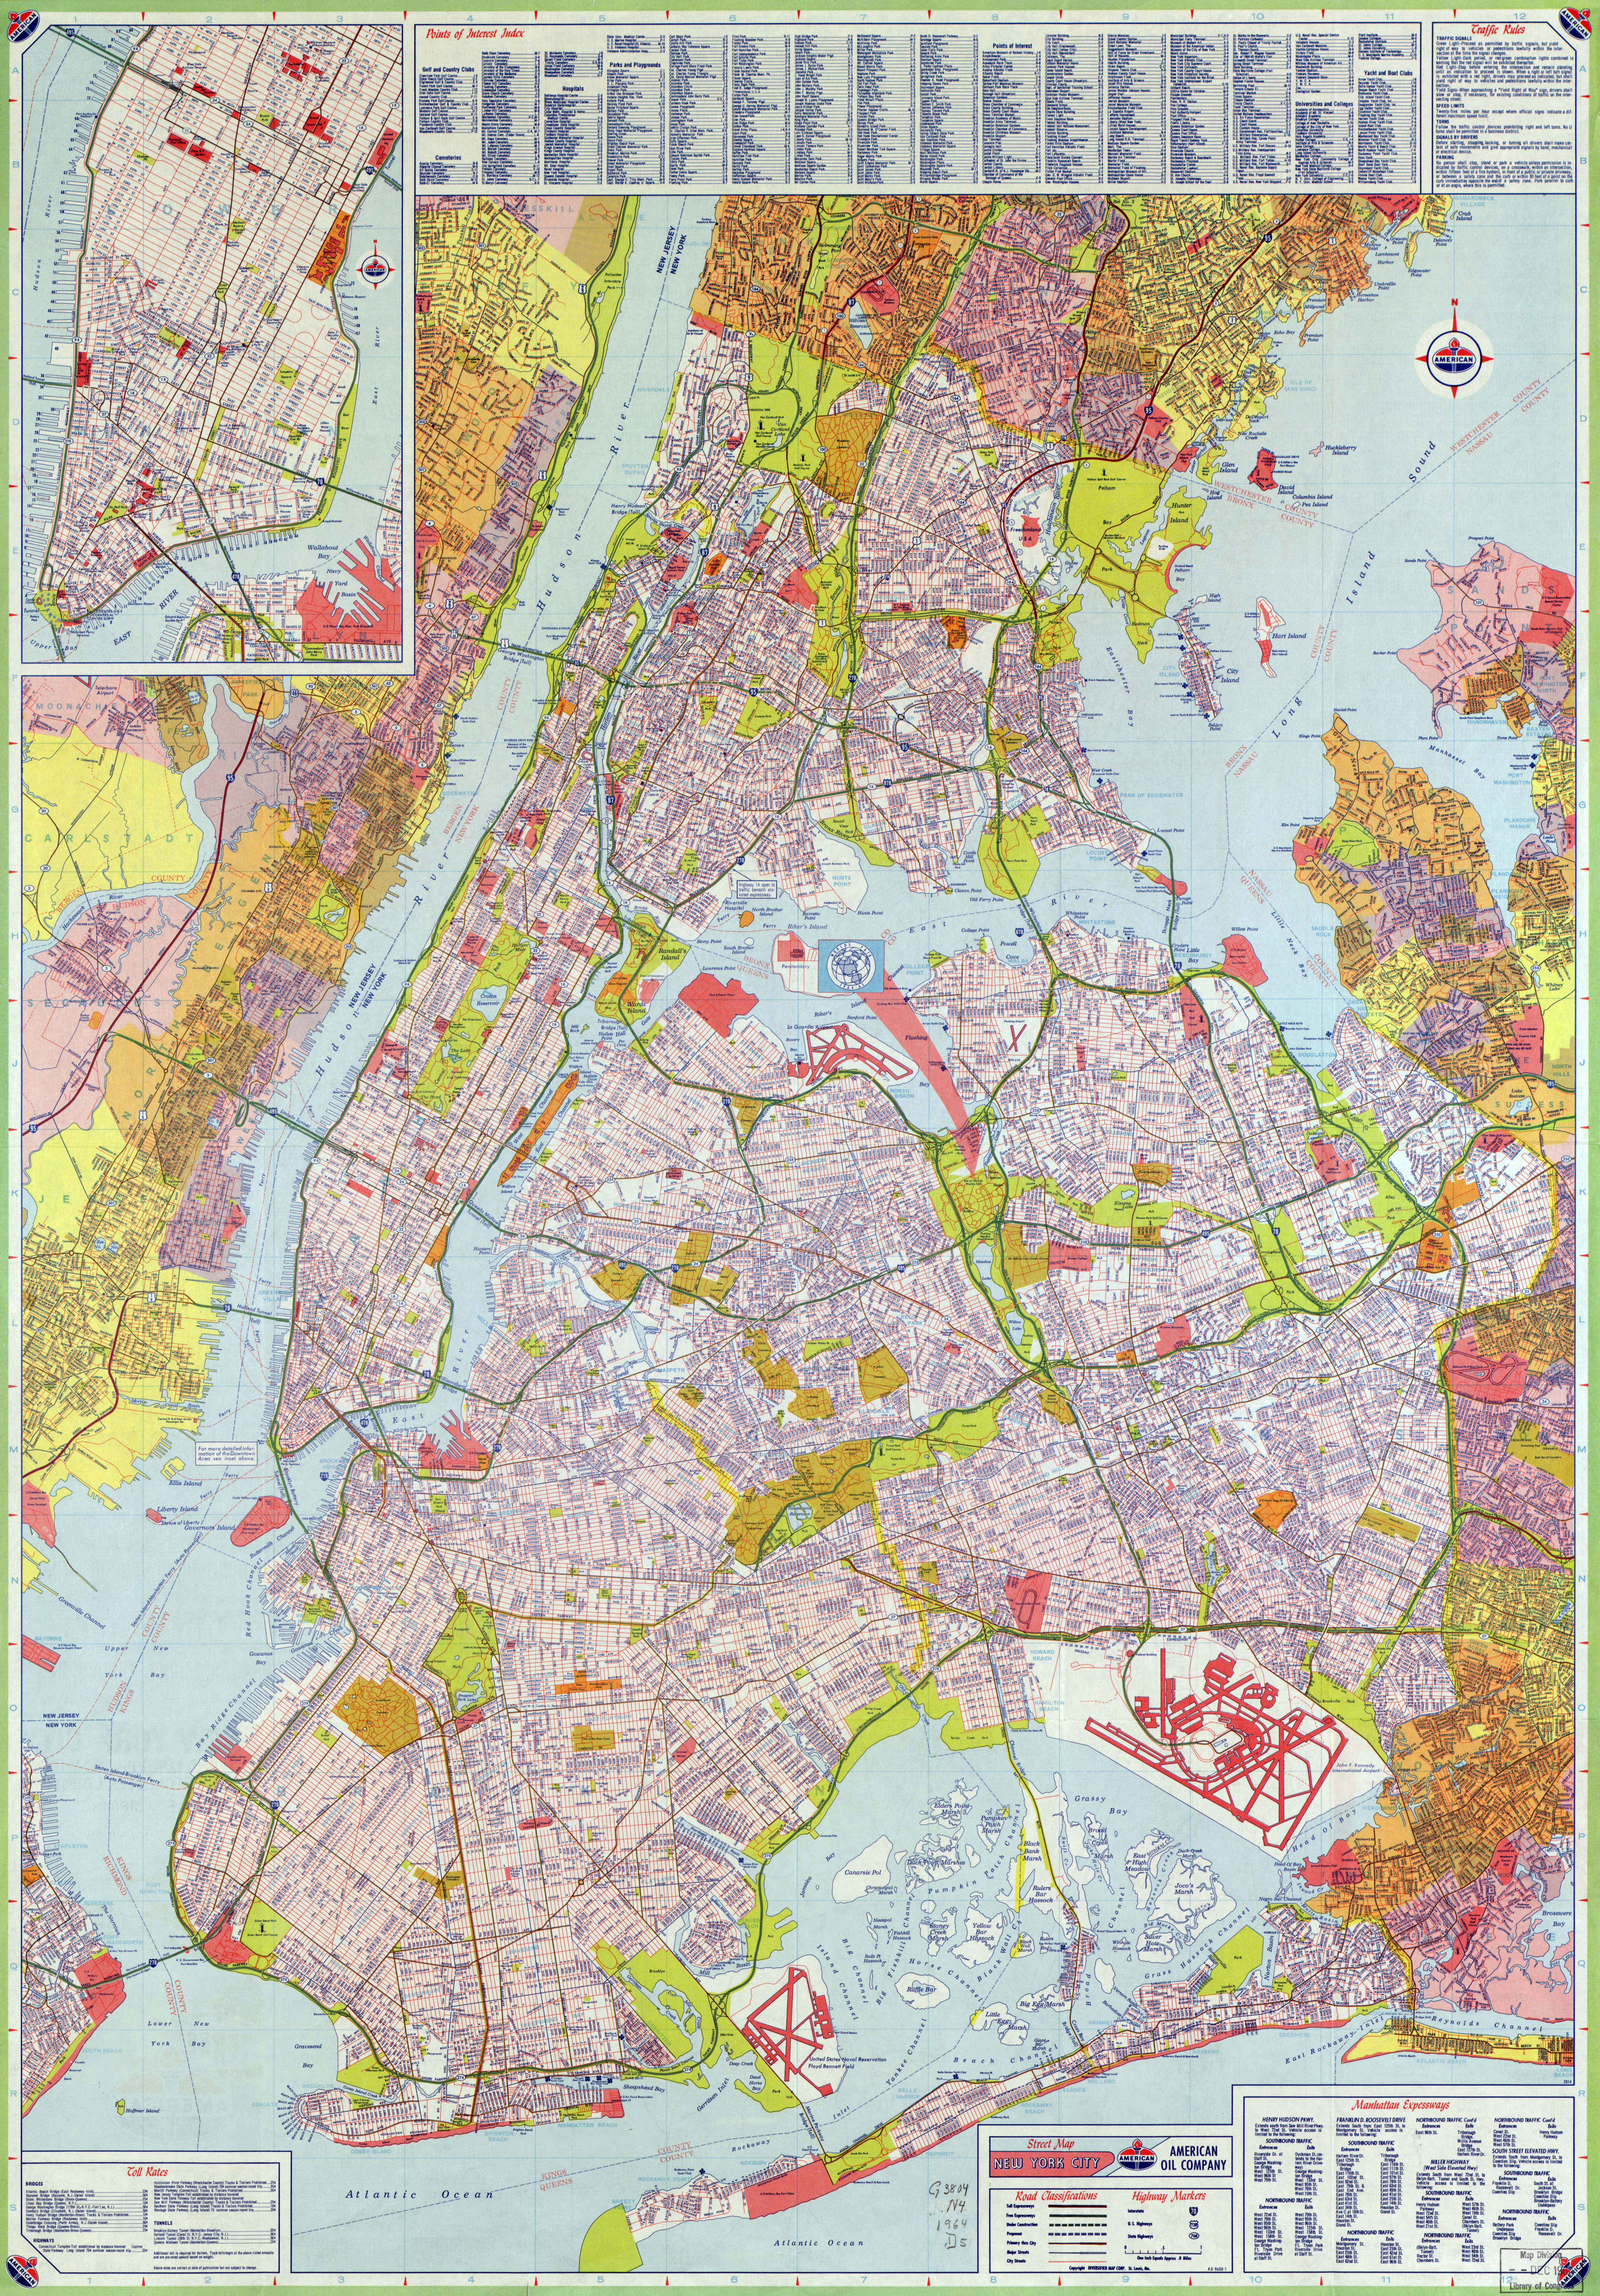 large scale detailed street map of new york city 1964